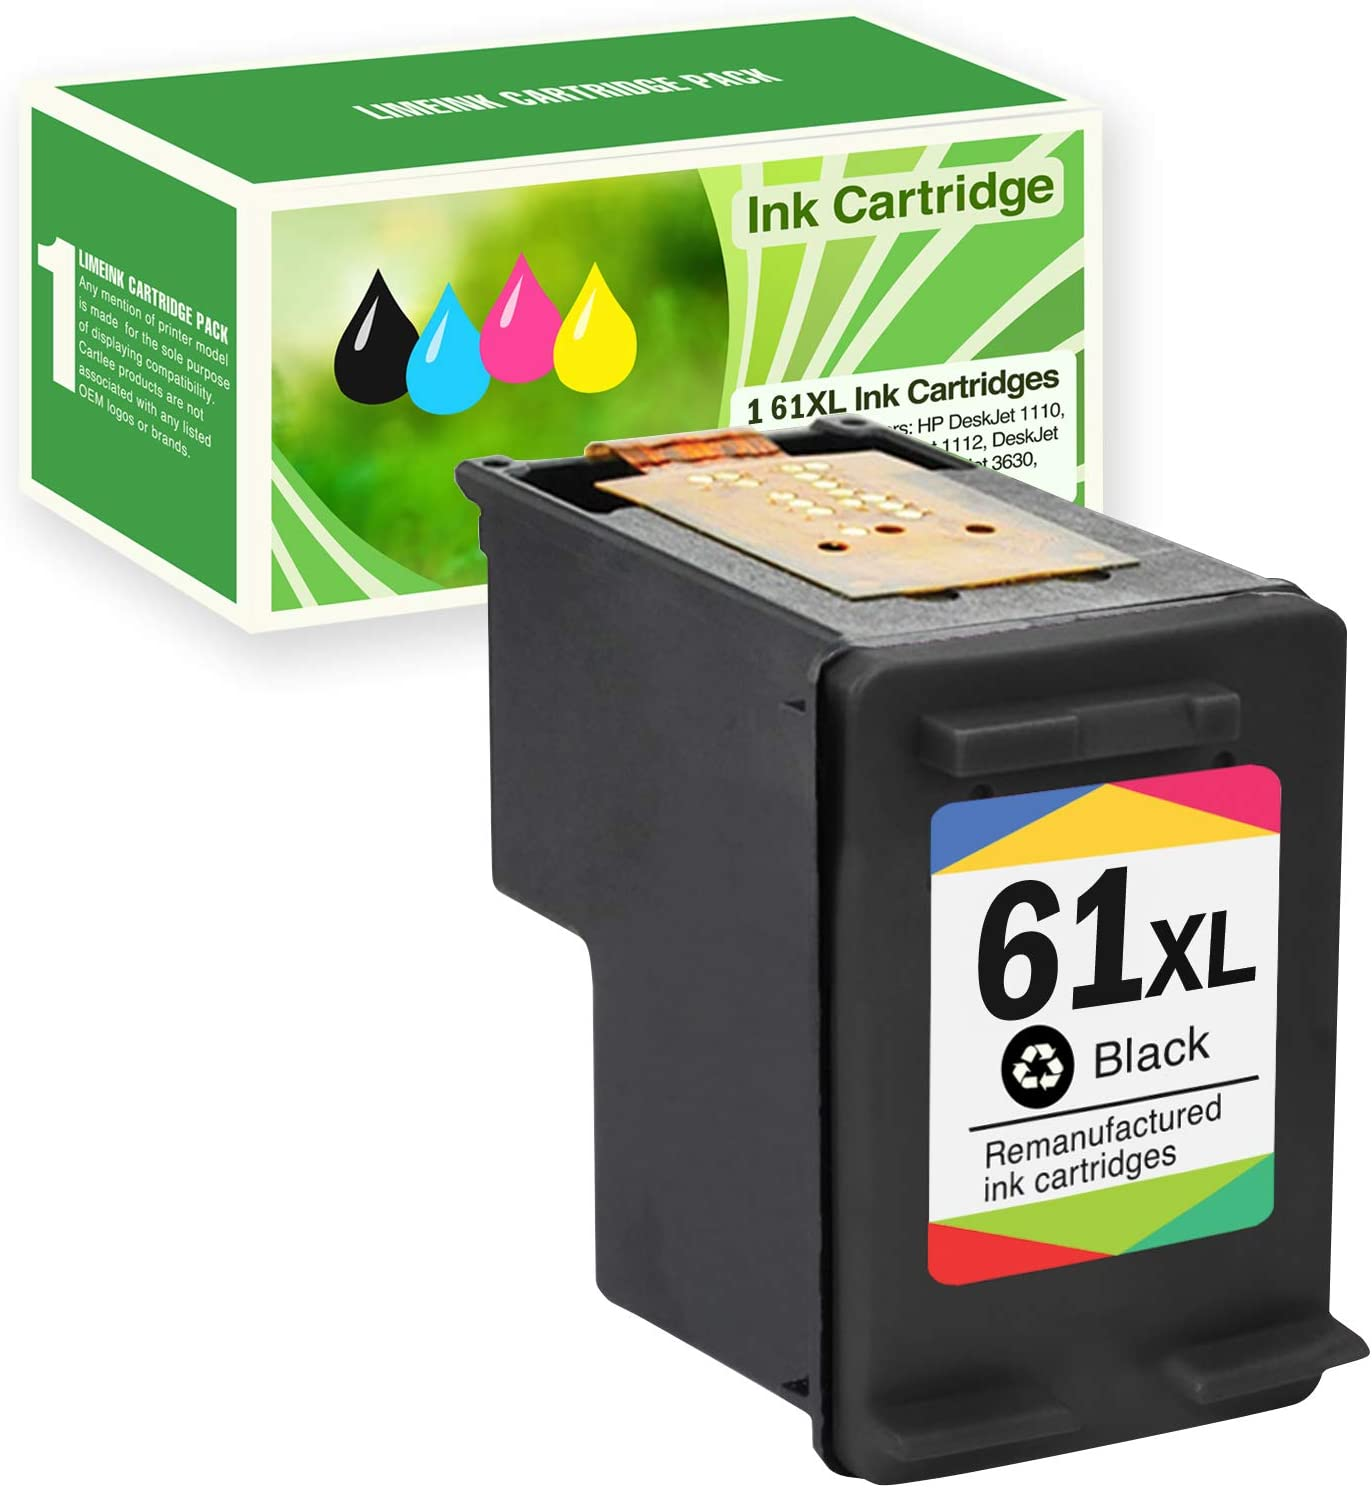 Limeink Remanufactured Ink Cartridge Replacement 61XL High Yield for HP 1000 1010 1050 1055 1510 1512 2000 2050 2510 2512 2514 2540 2542 2543 2549 3000 3050 3050A 3051A 3052A 3052A 3054A Envy -1 Black